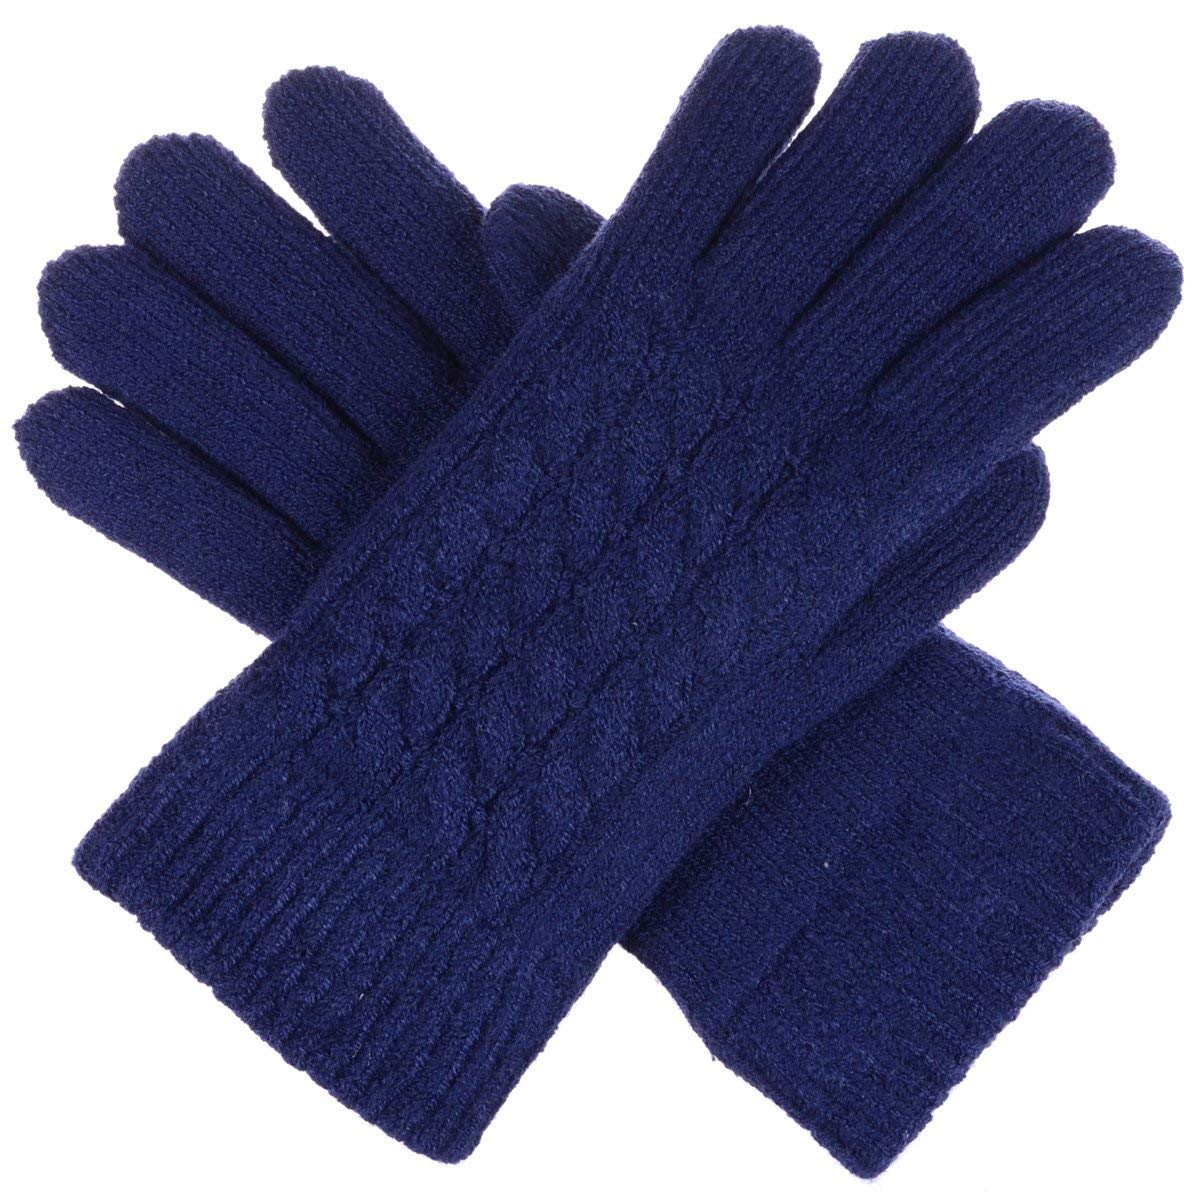 BYOS Women's Winter Classic Cable Warm Plush Fleece Lined Knit Gloves, Many Styles